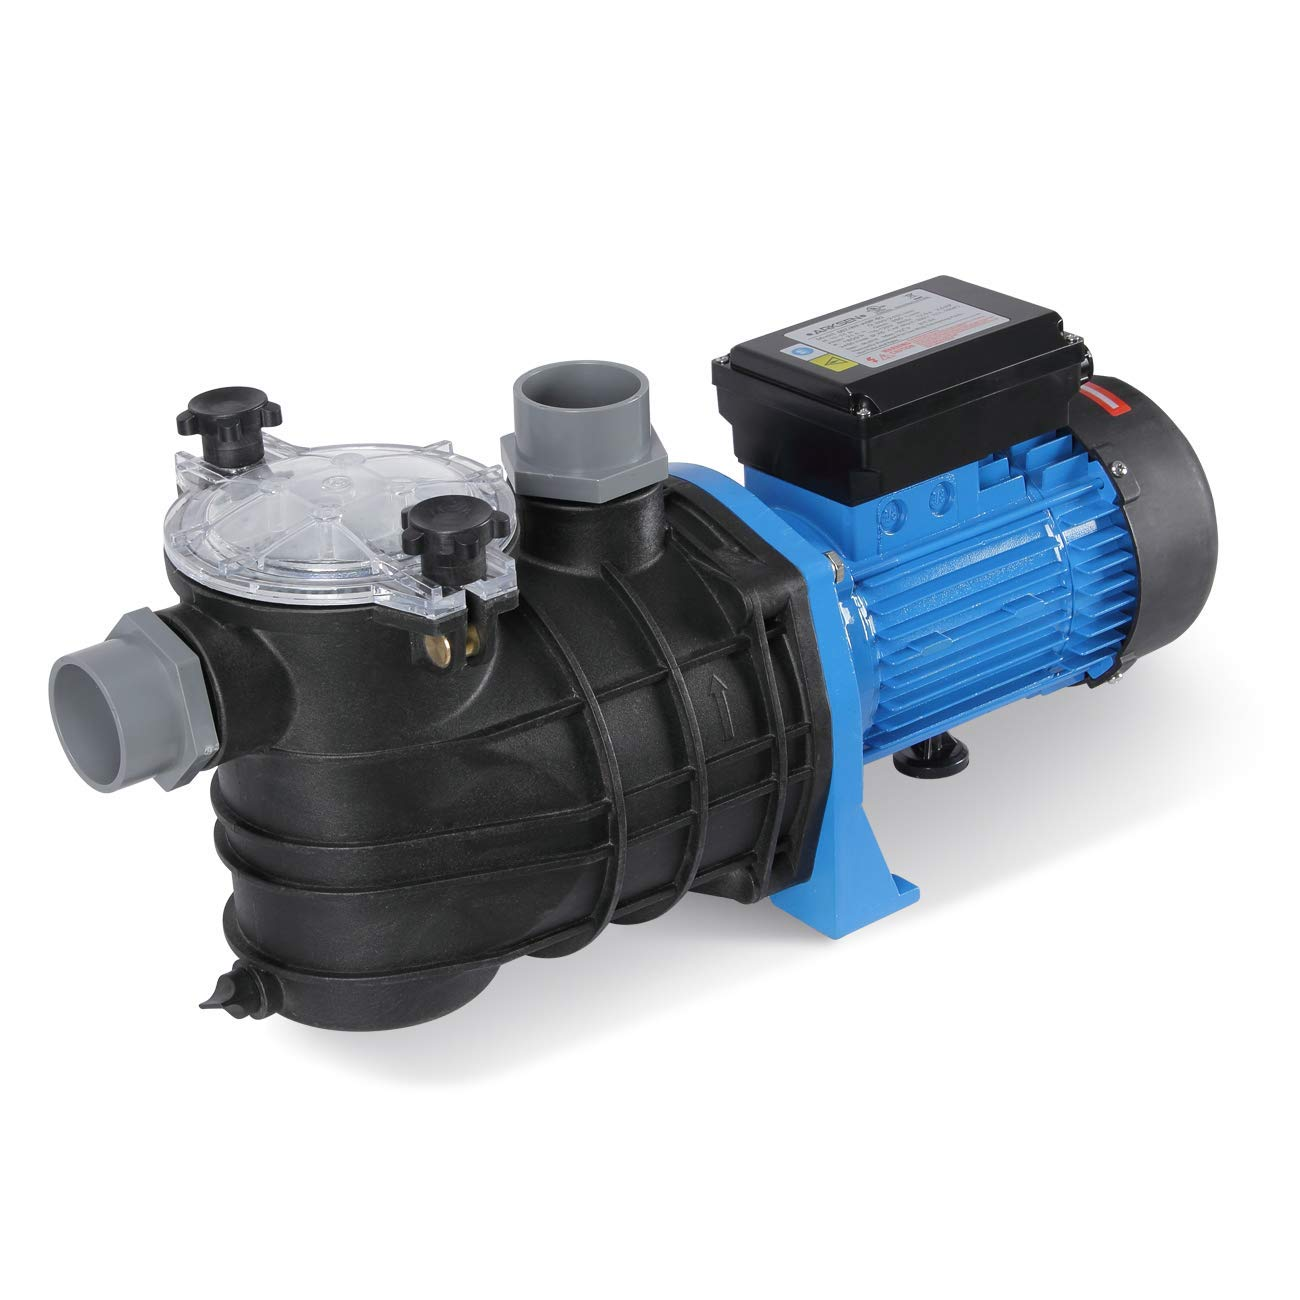 bdcb99c7920 ARKSEN 2.5HP InGround Above Ground High-Flo Swimming Pool Pump (6000GPH) UL